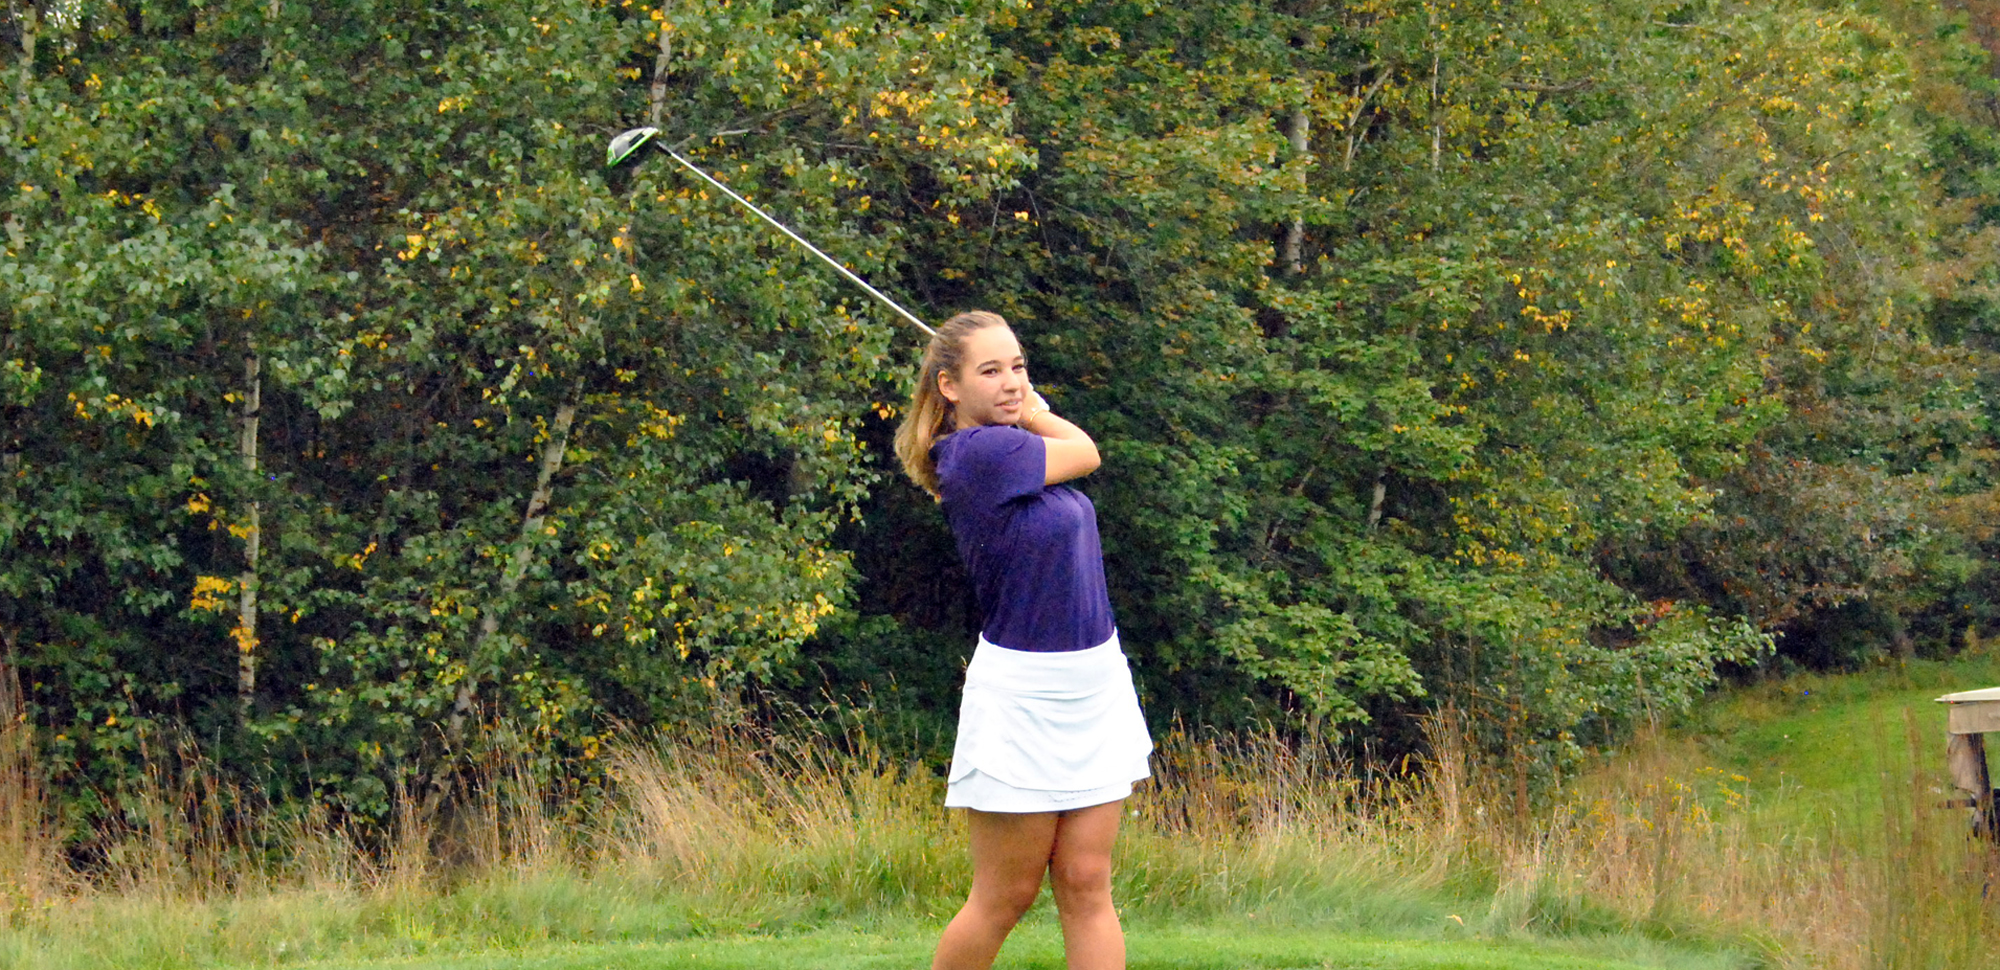 Junior Brianna Stein made a clutch par on the 18th hole to win her match against Marywood on Sunday.